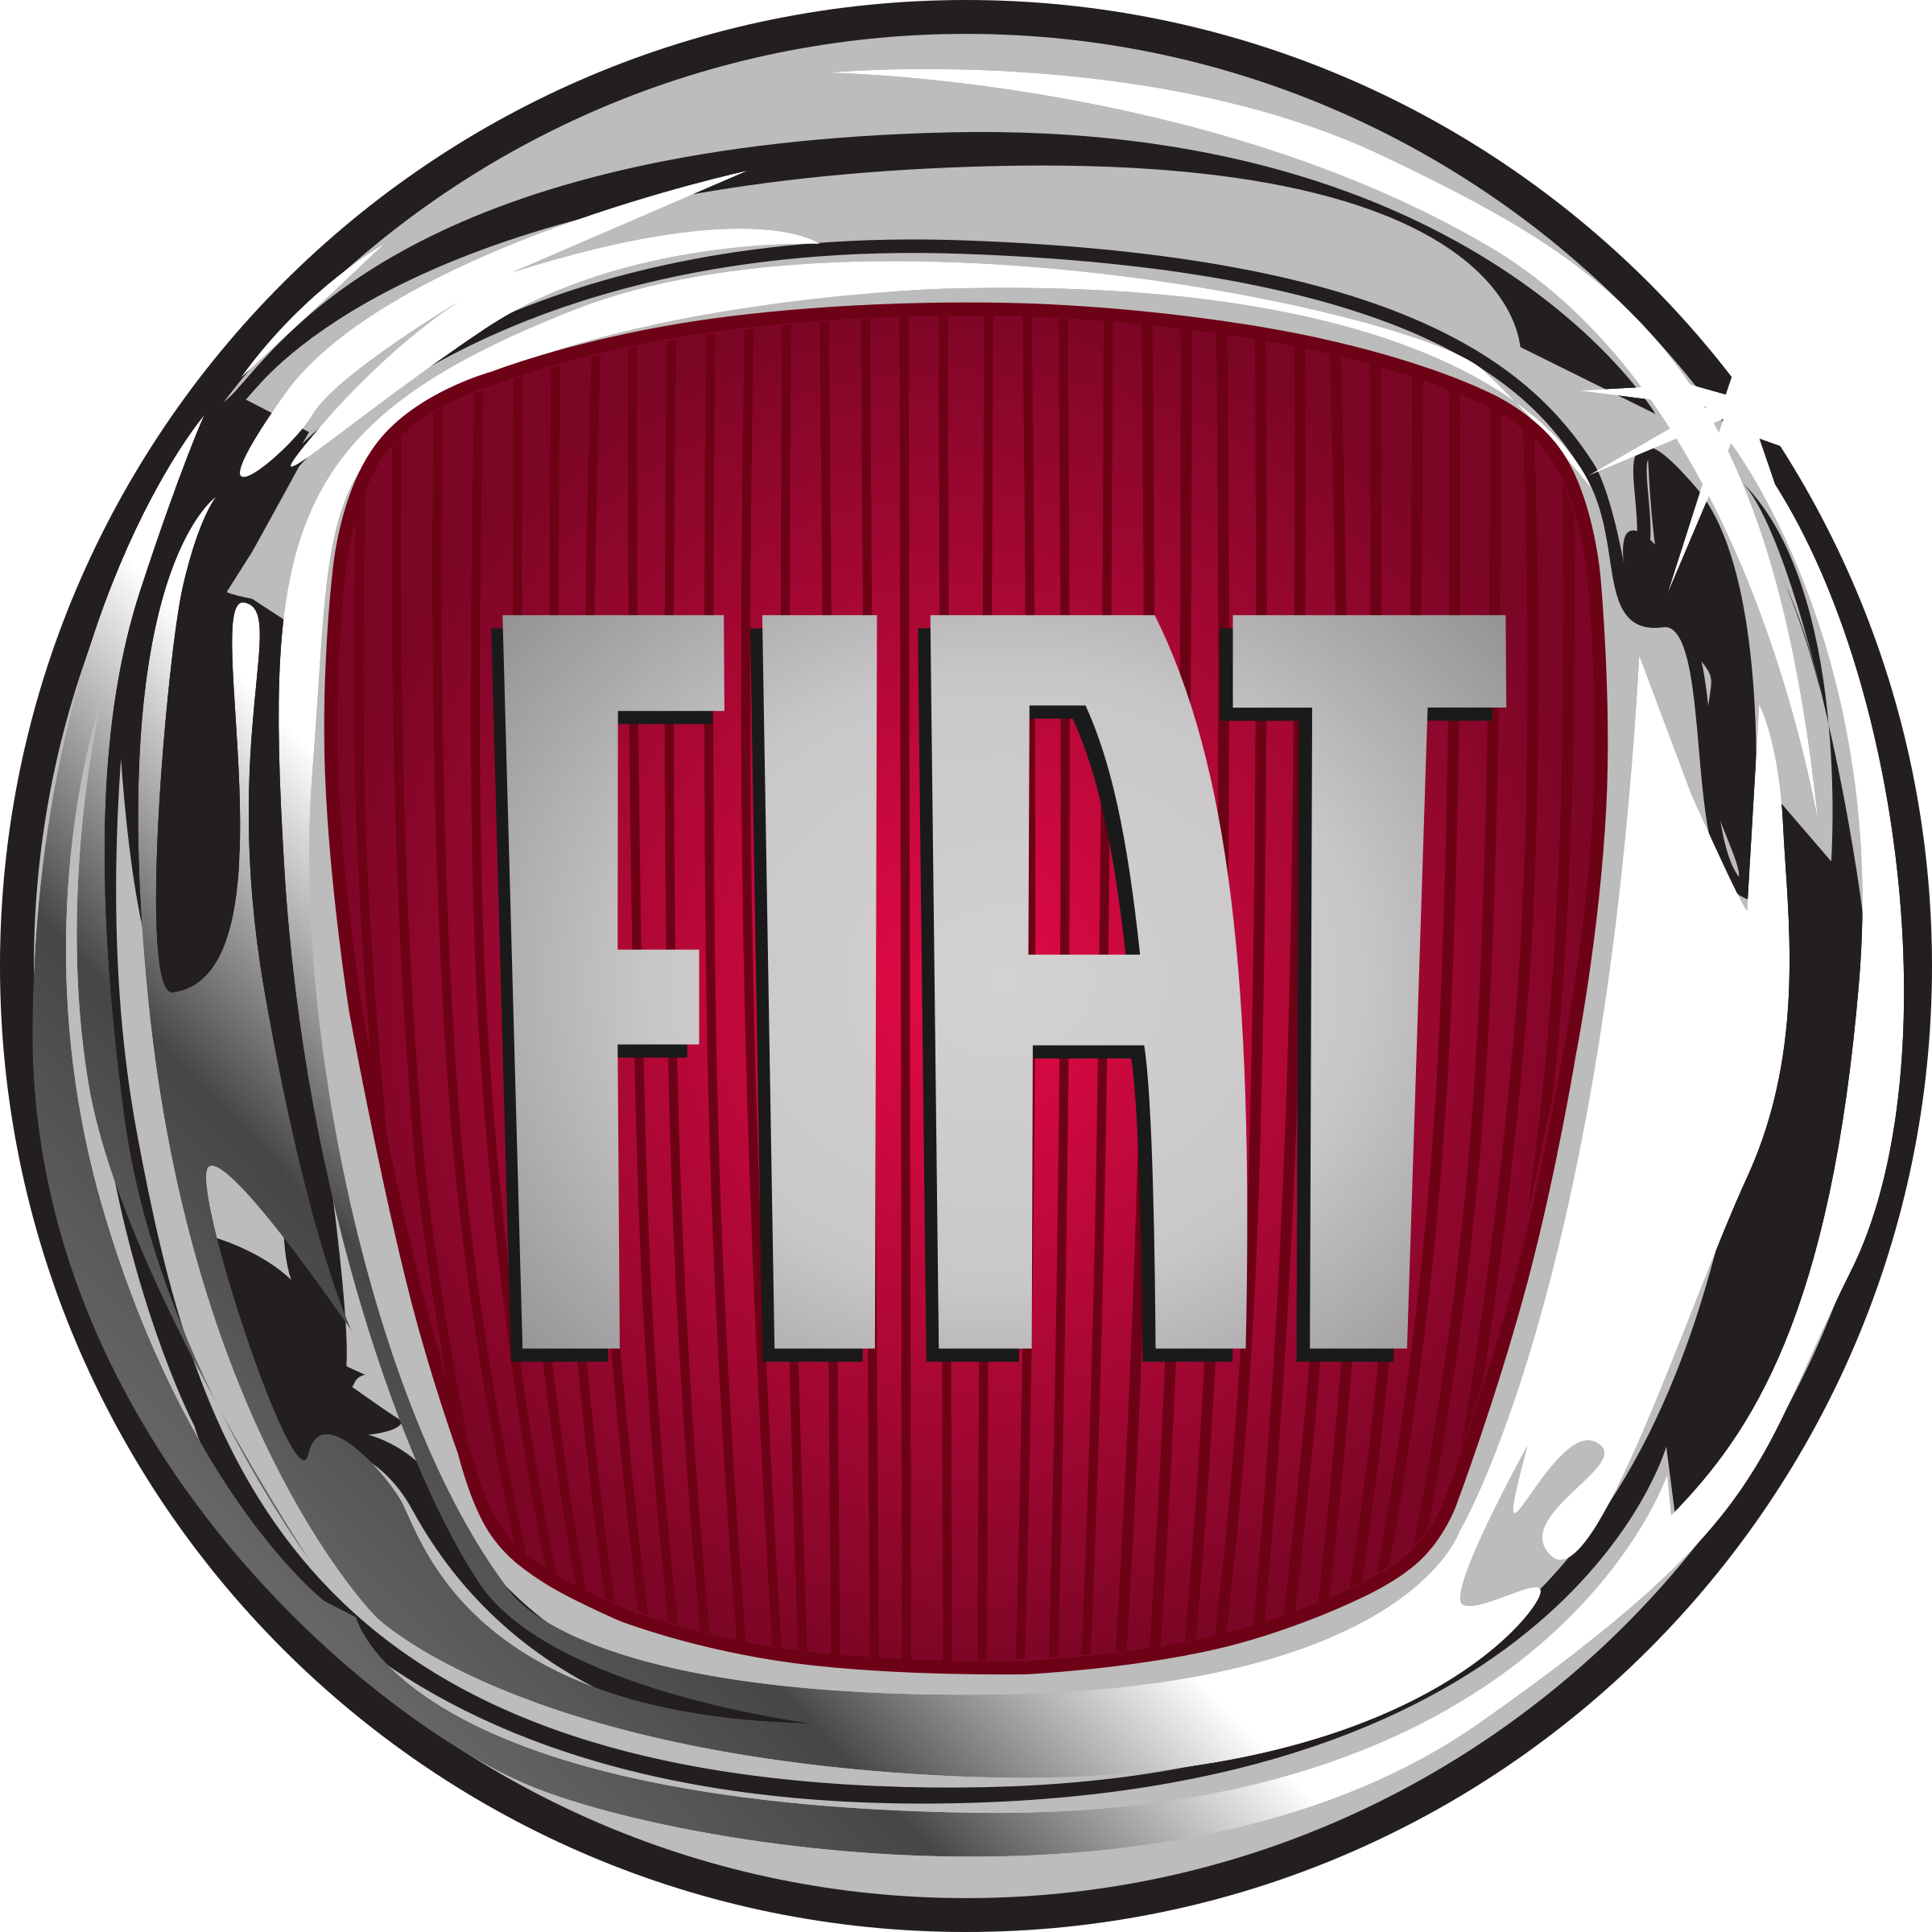 fiat-3-logo-png-transparent (1)